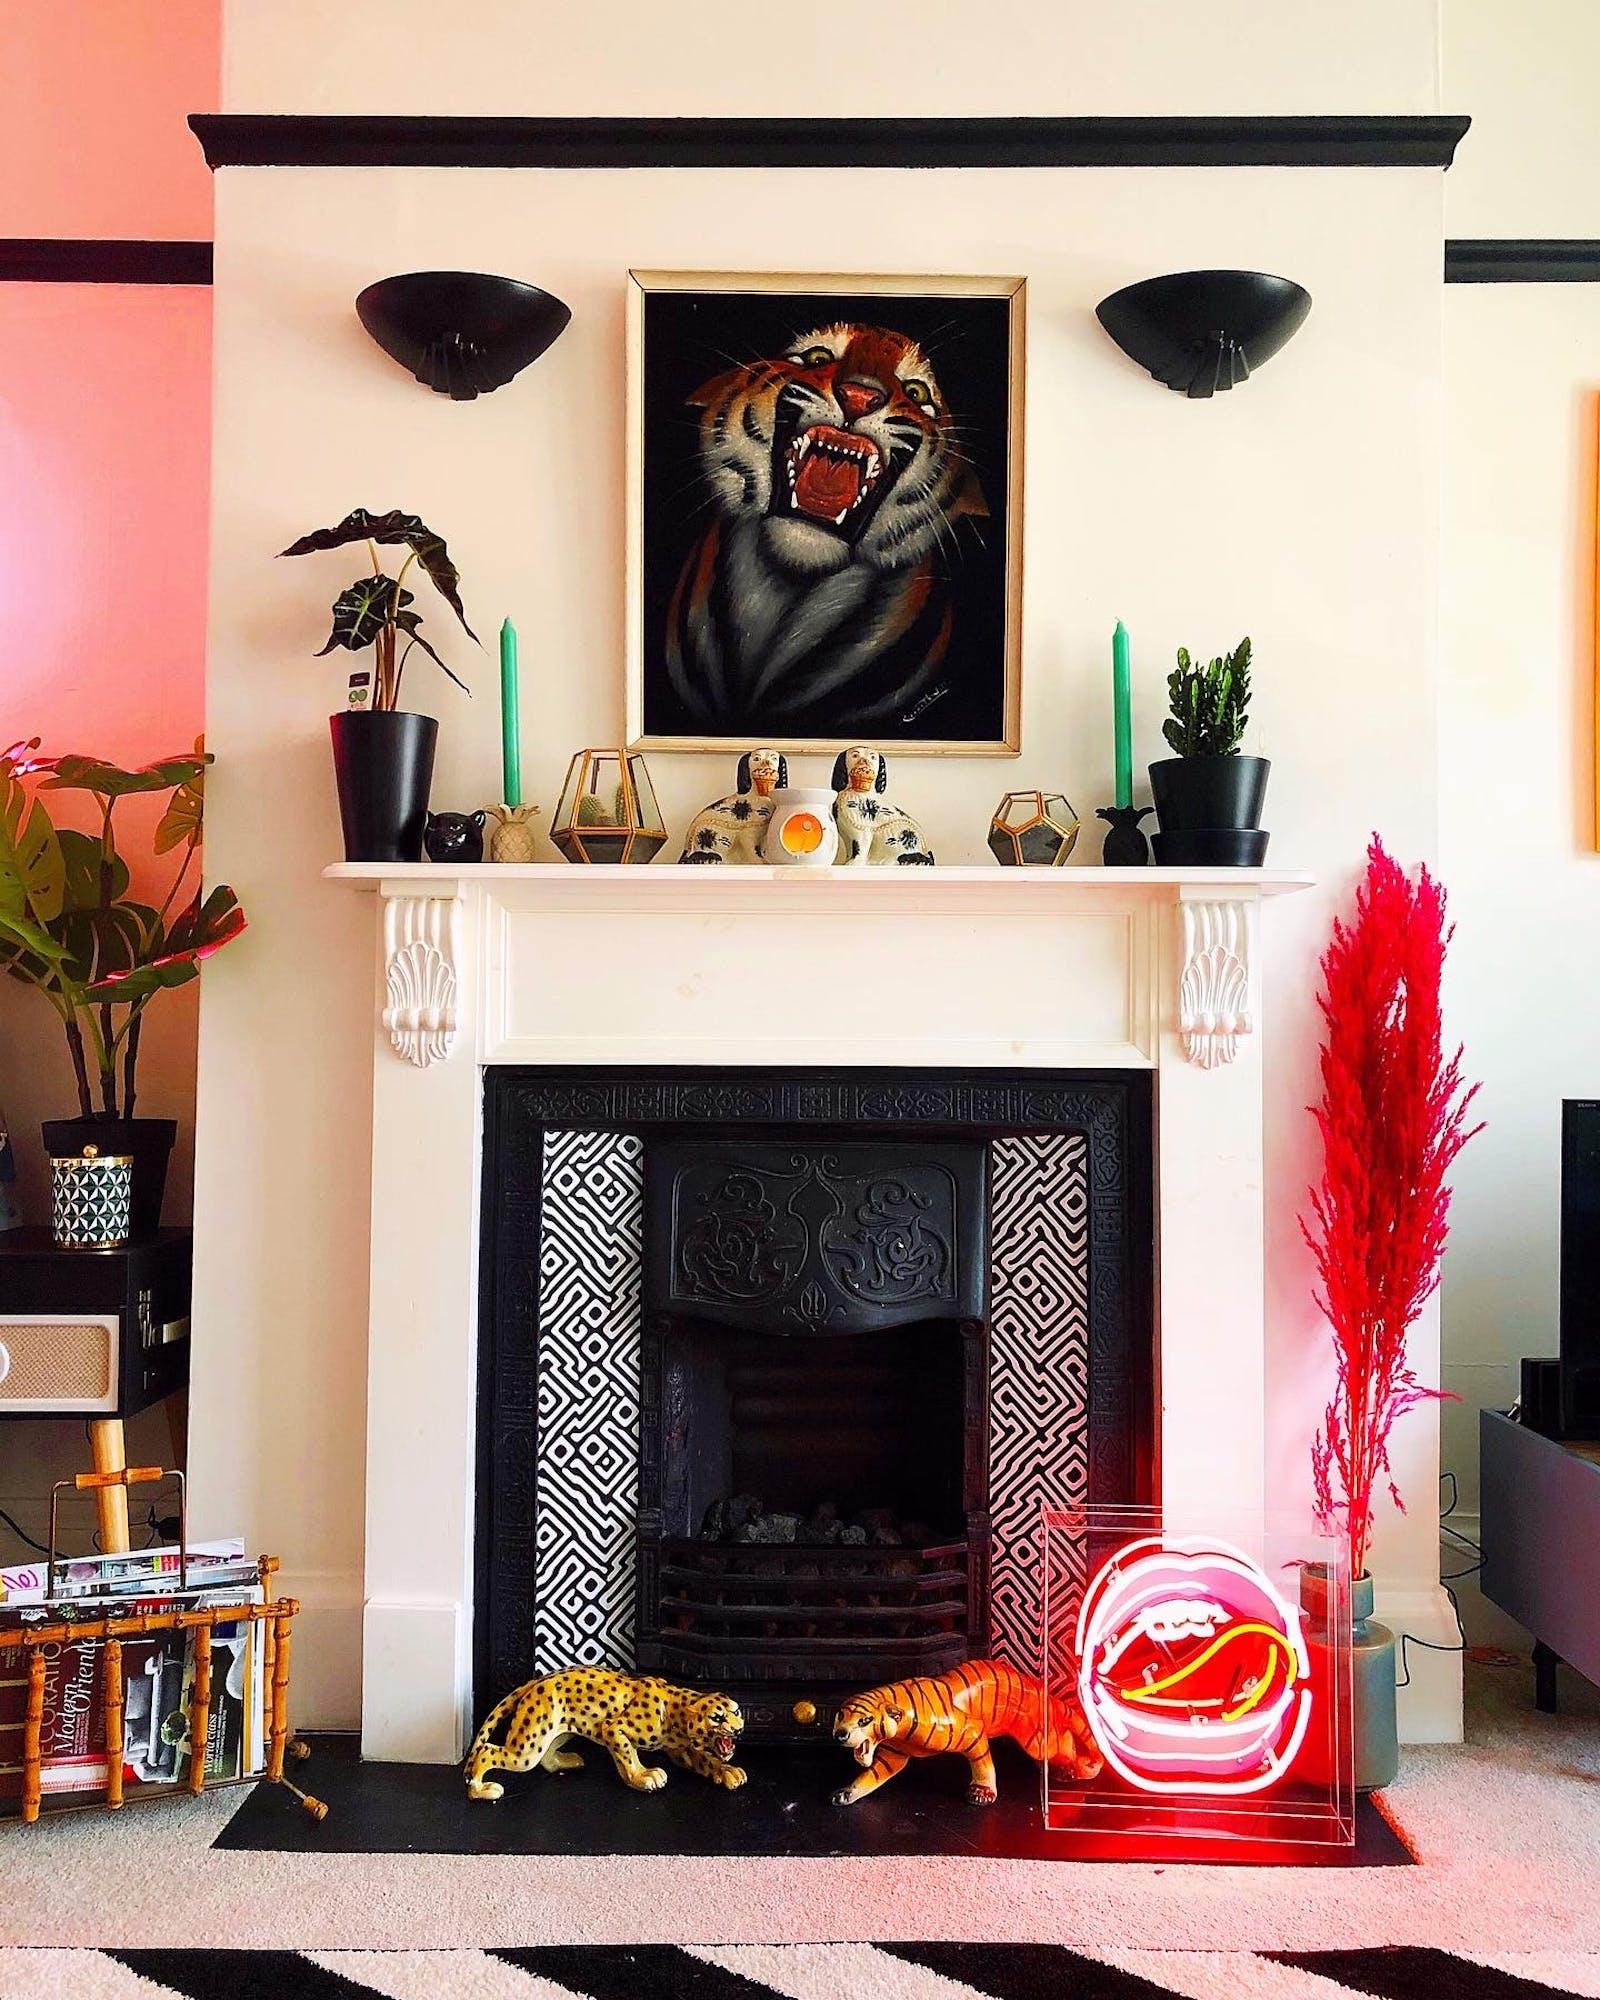 RHOI tiger painting, neon lips and vibrant accessories accompany a geometrically painted black and white fireplace